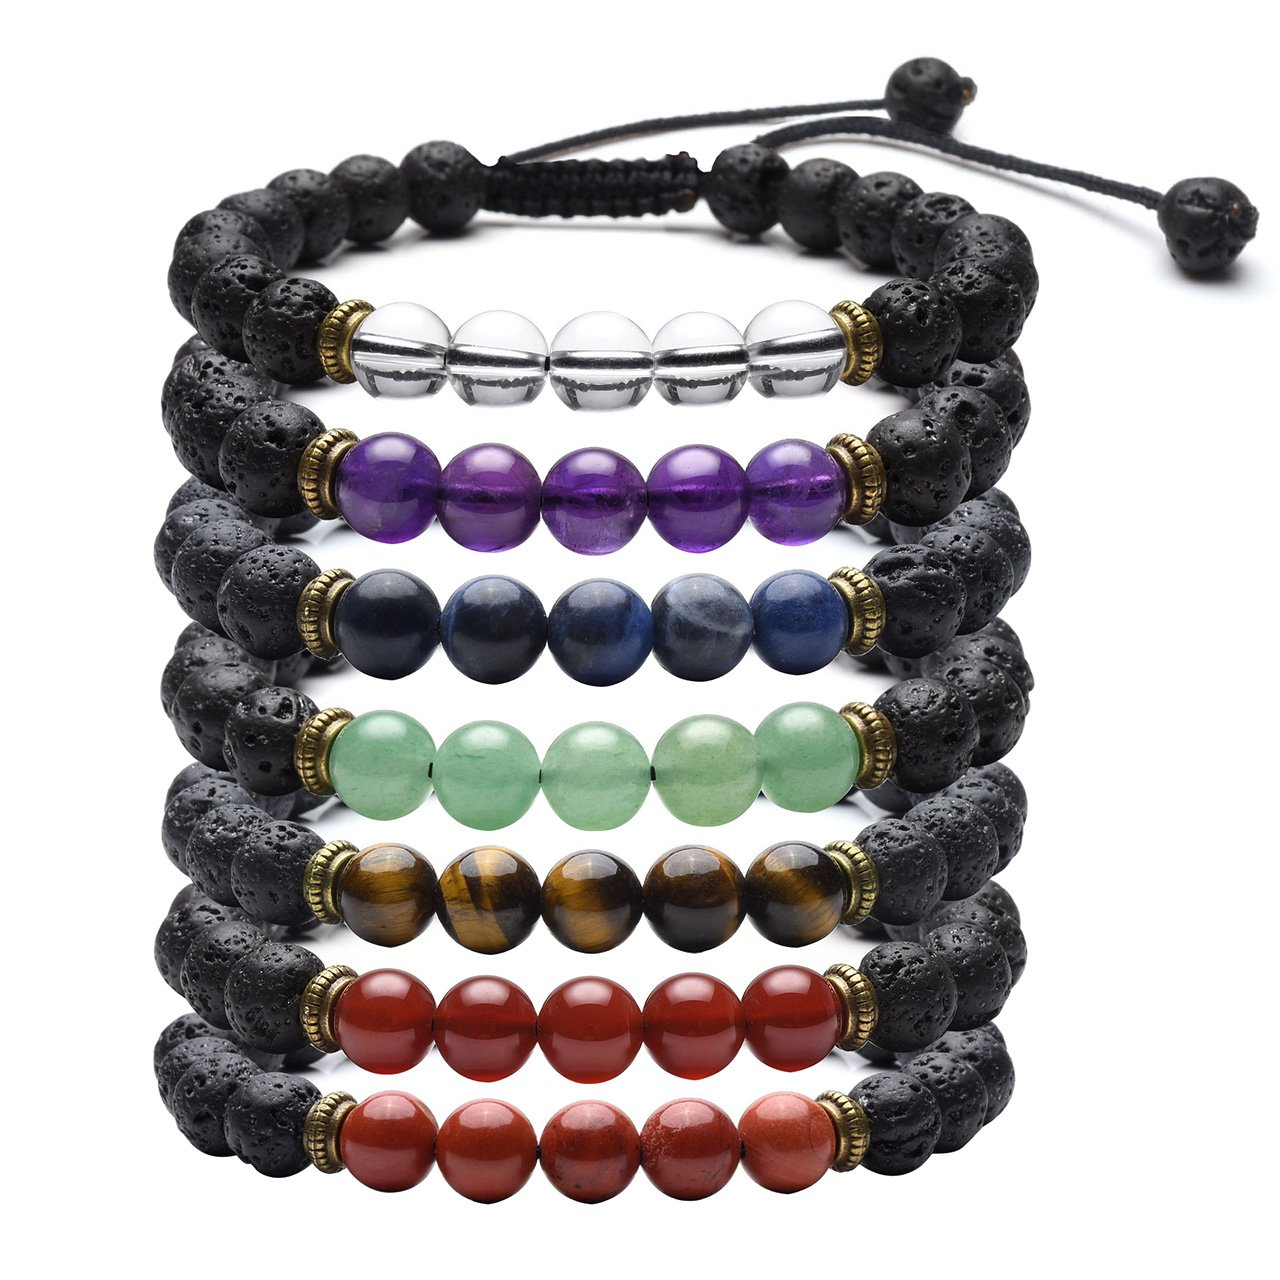 Top Plaza 7 Chakra Reiki Healing Crystals Beads Braid Adjustable Bracelet with Real Lava Rock Stone for Protection, Energy, Aromatherapy Essential Oil Diffuser(Set of 7) by Top Plaza (Image #1)